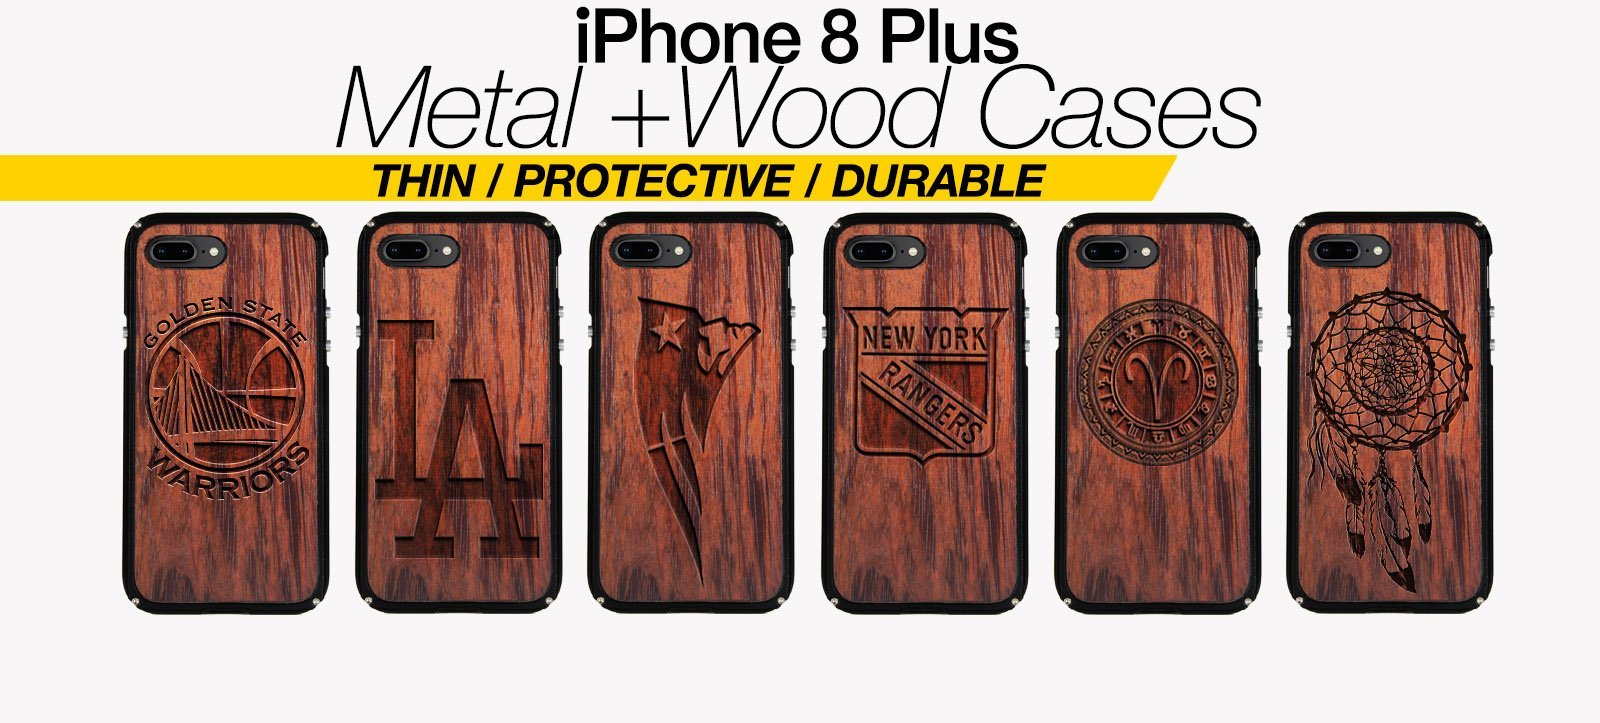 Wood And Metal iPhone 8 Plus Cases Best Wood And Metal iPhone 8 Plus Covers Thin Protective Eco Friendly